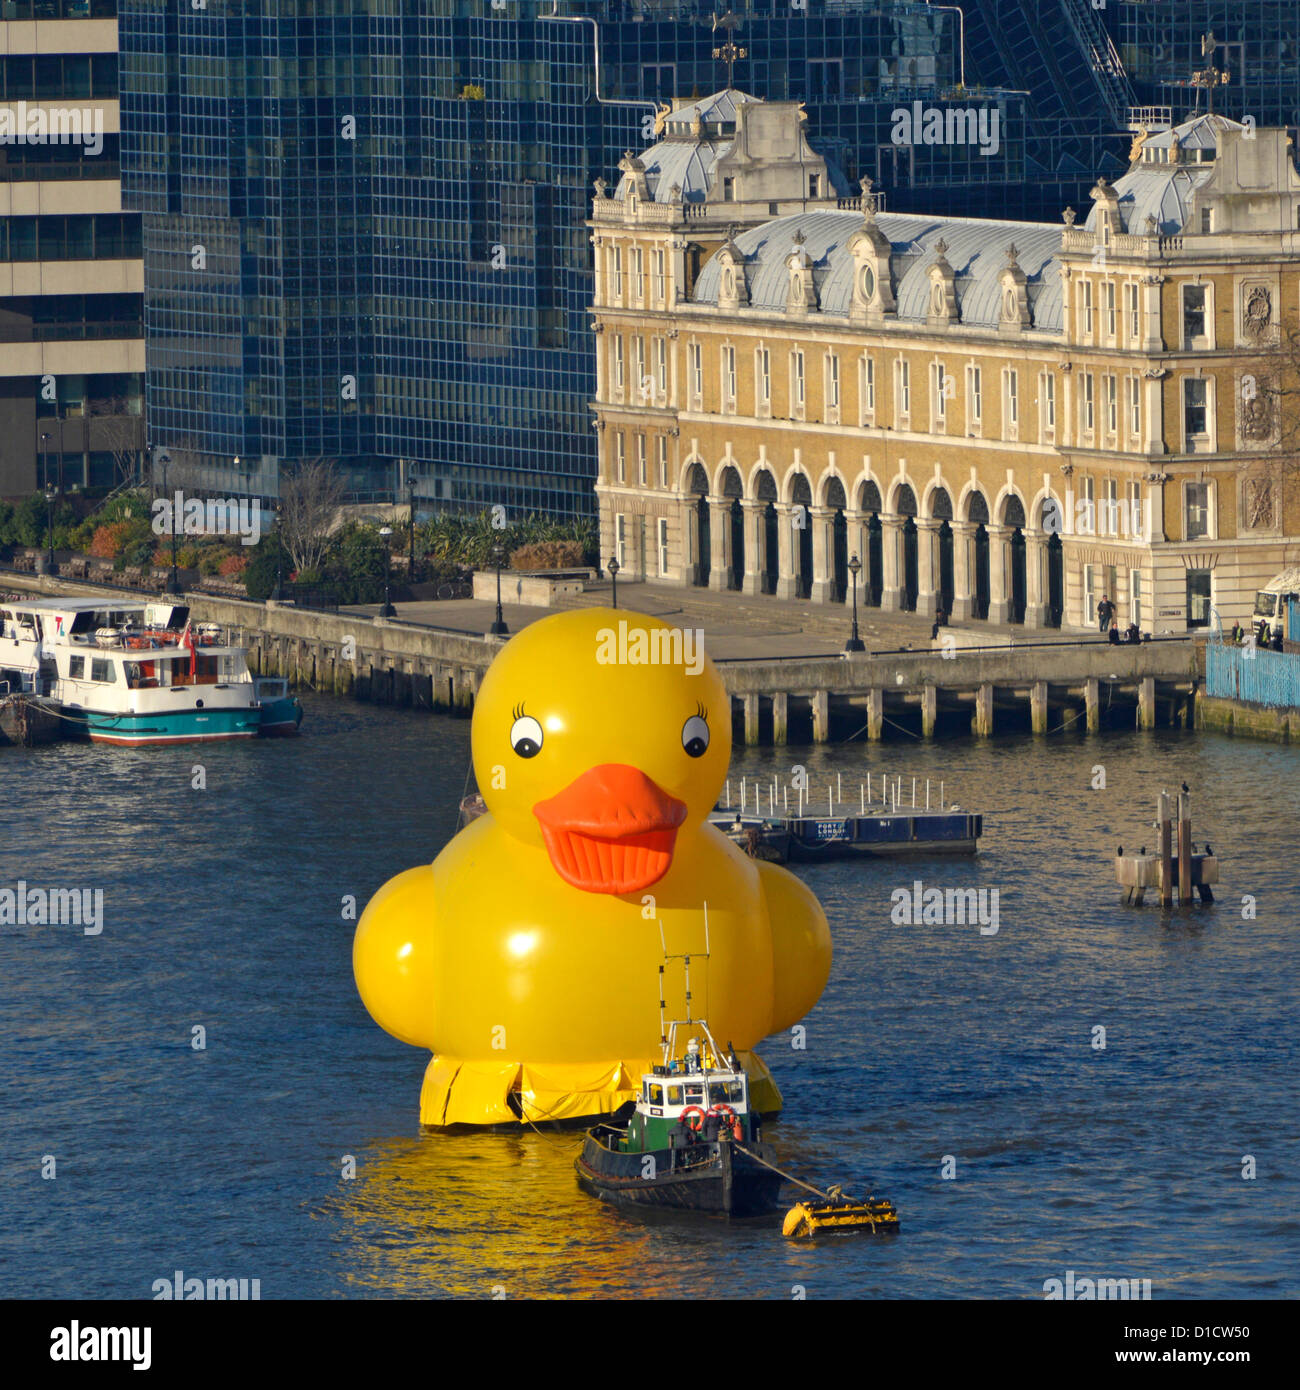 Yellow duck on River Thames promoting the Jackpotjoy bingo website, seen with the old Custom House building beyond - Stock Image